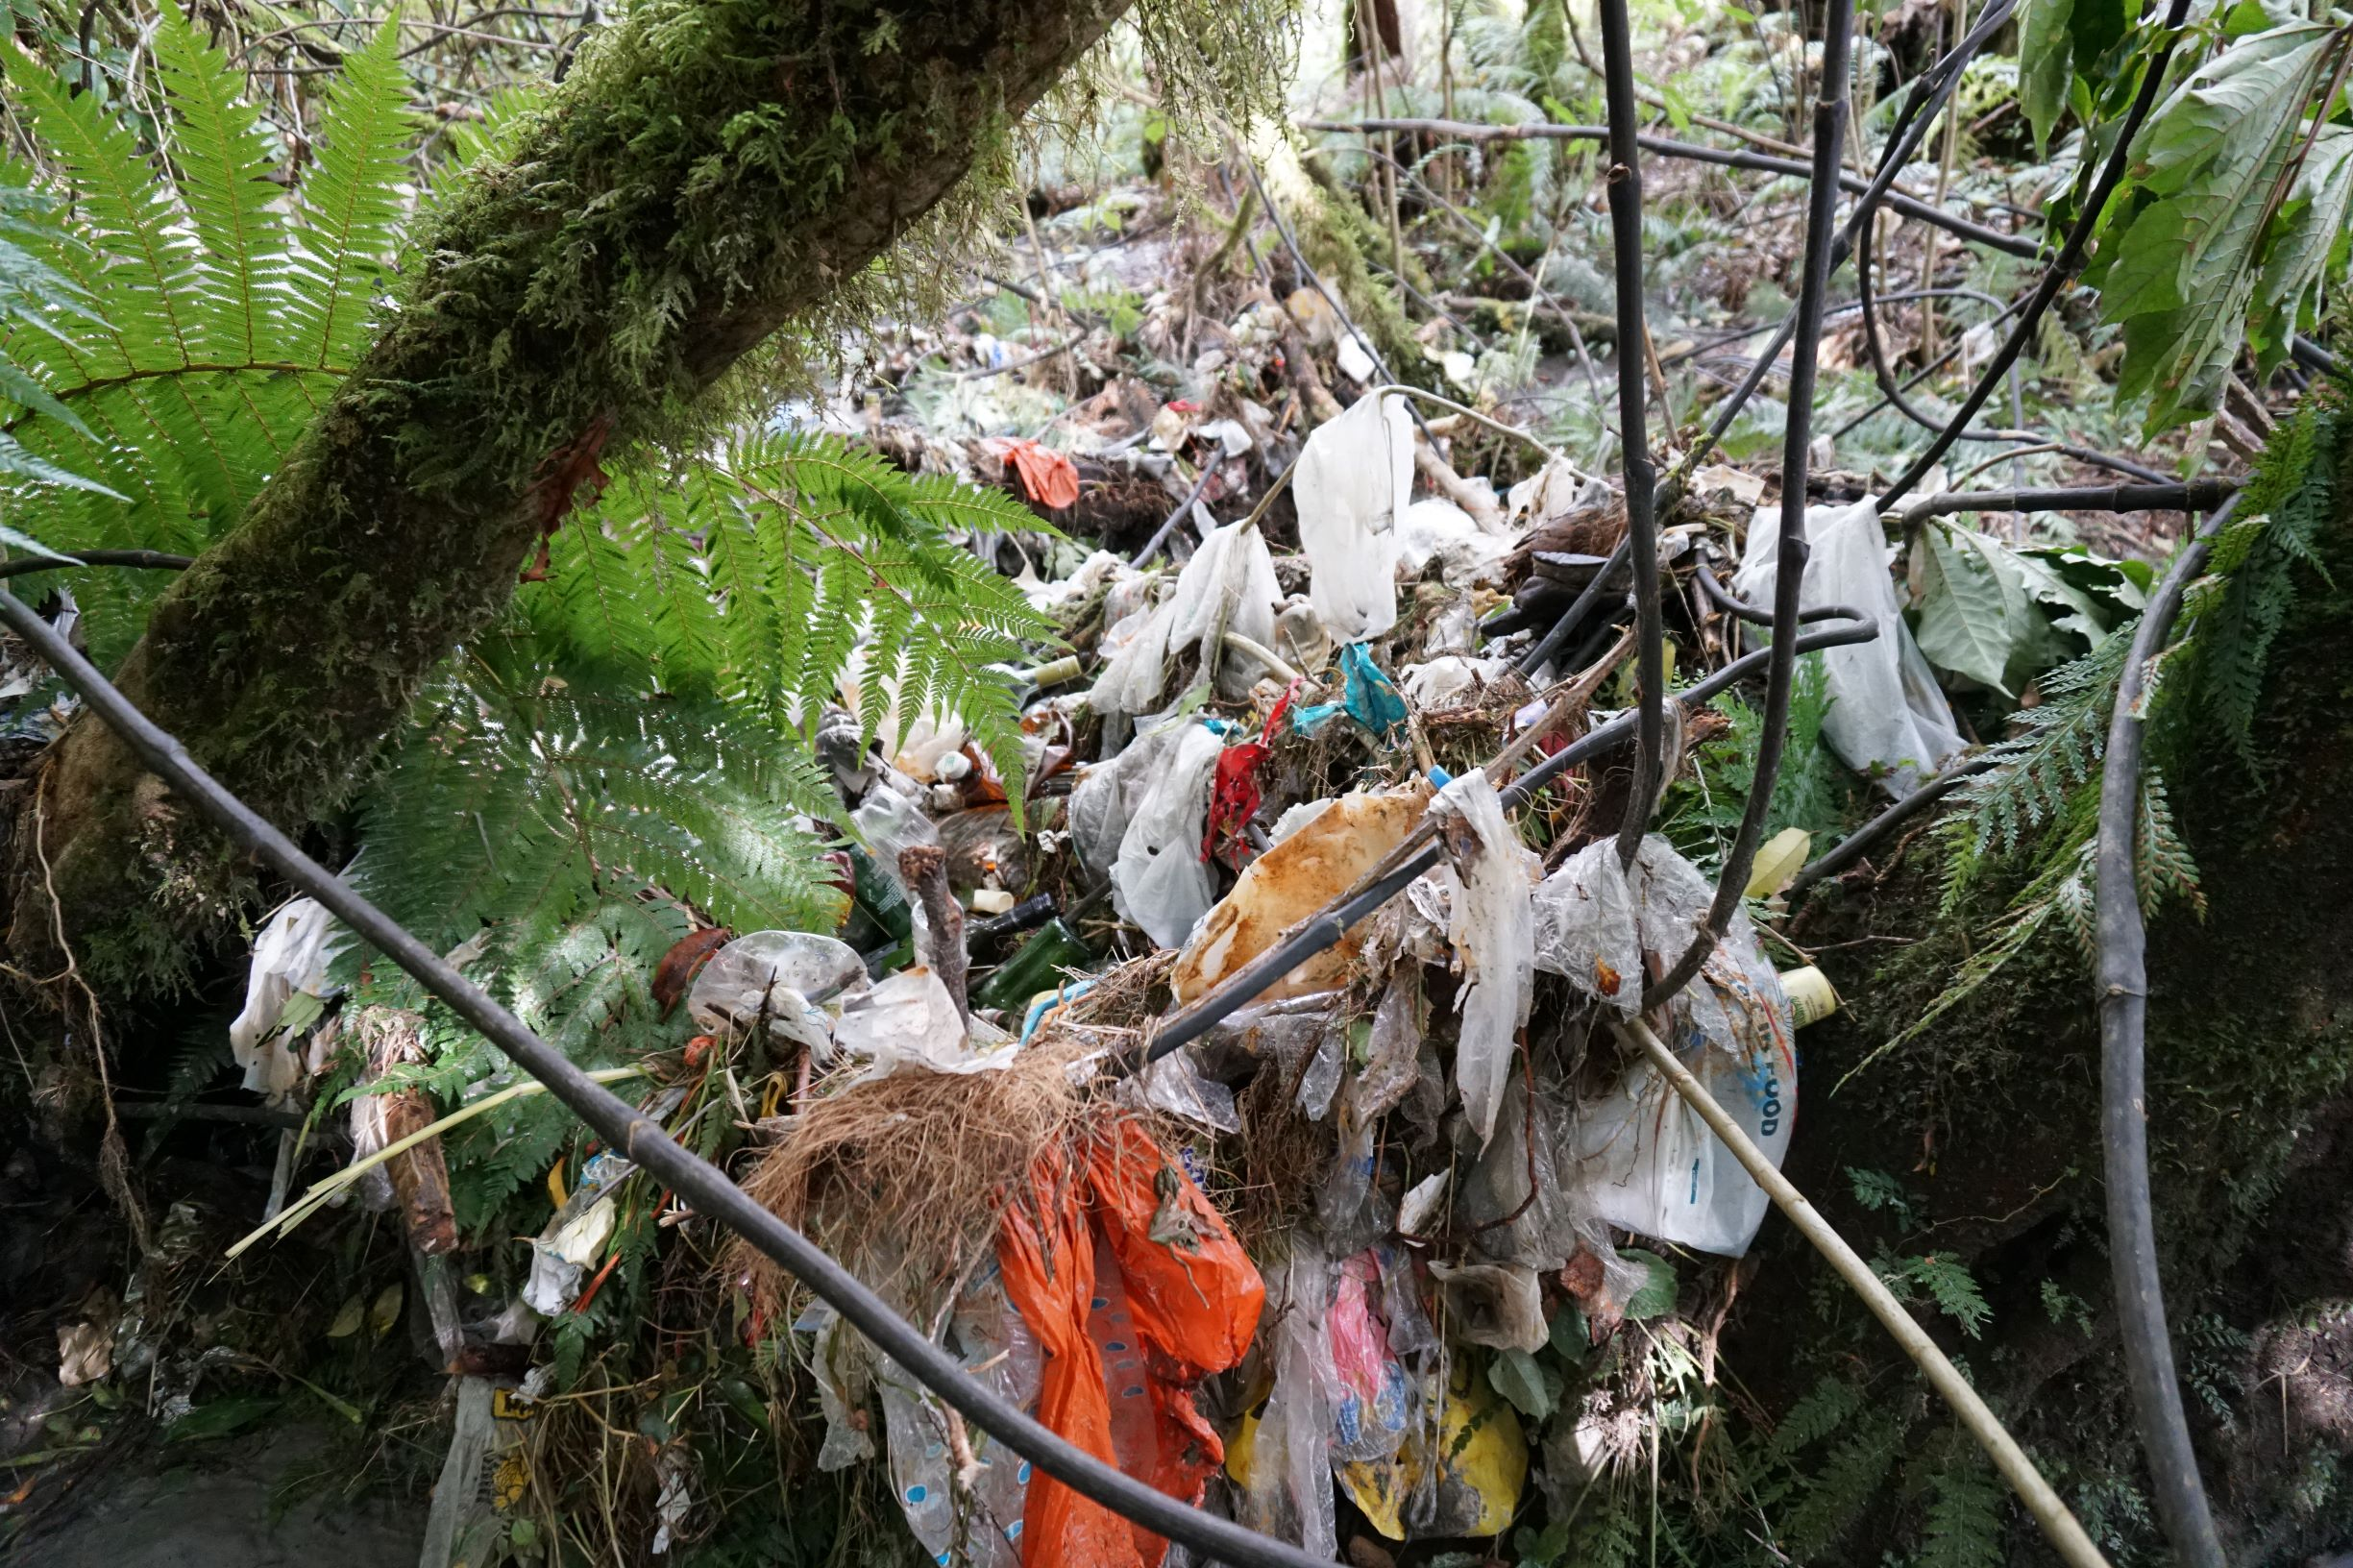 Report on dealing with plastics – Expert Reaction